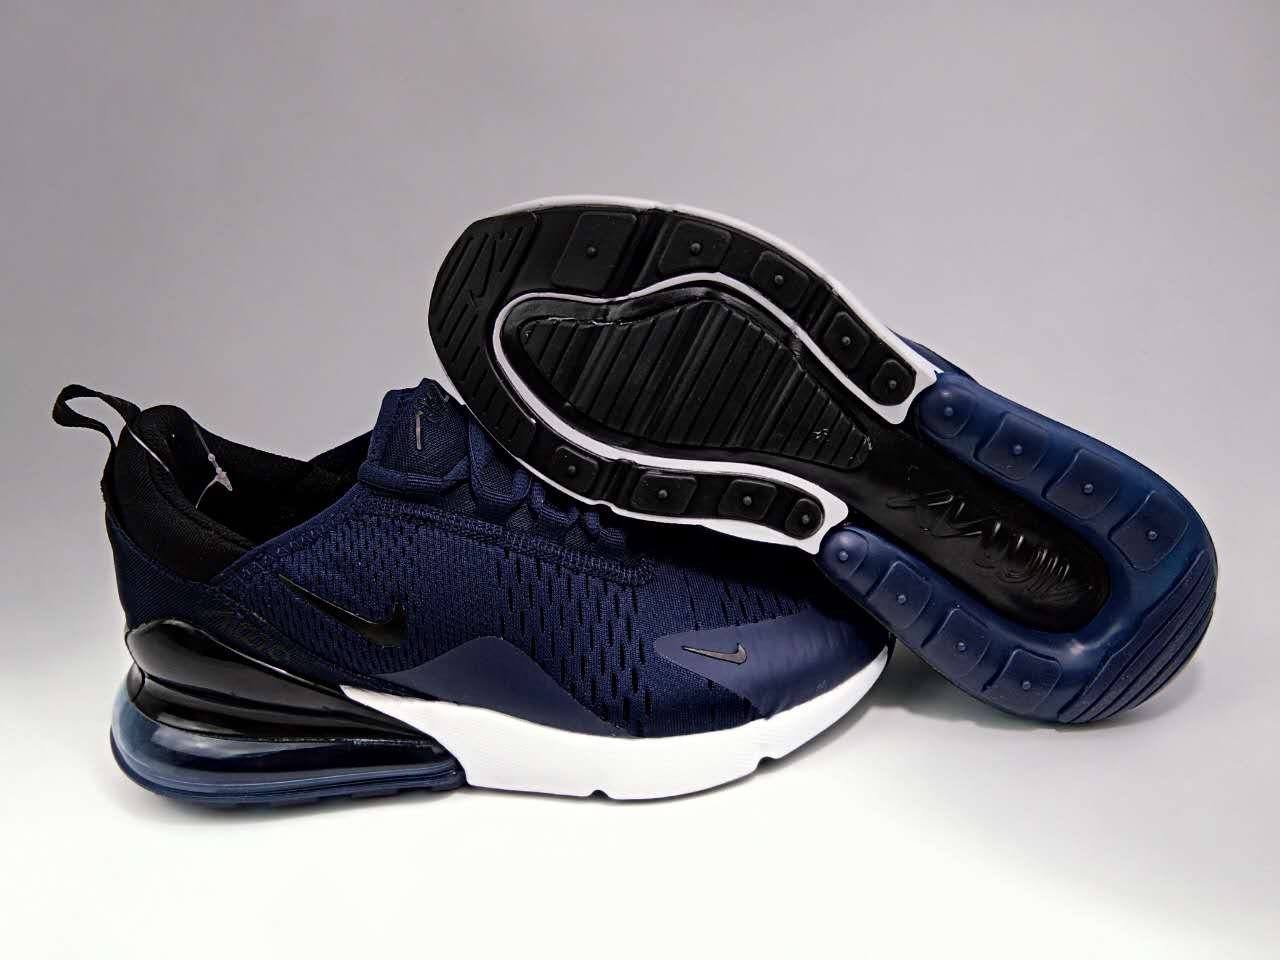 New Nike Air Max Flair 270 Nano Deep Blue Shoes